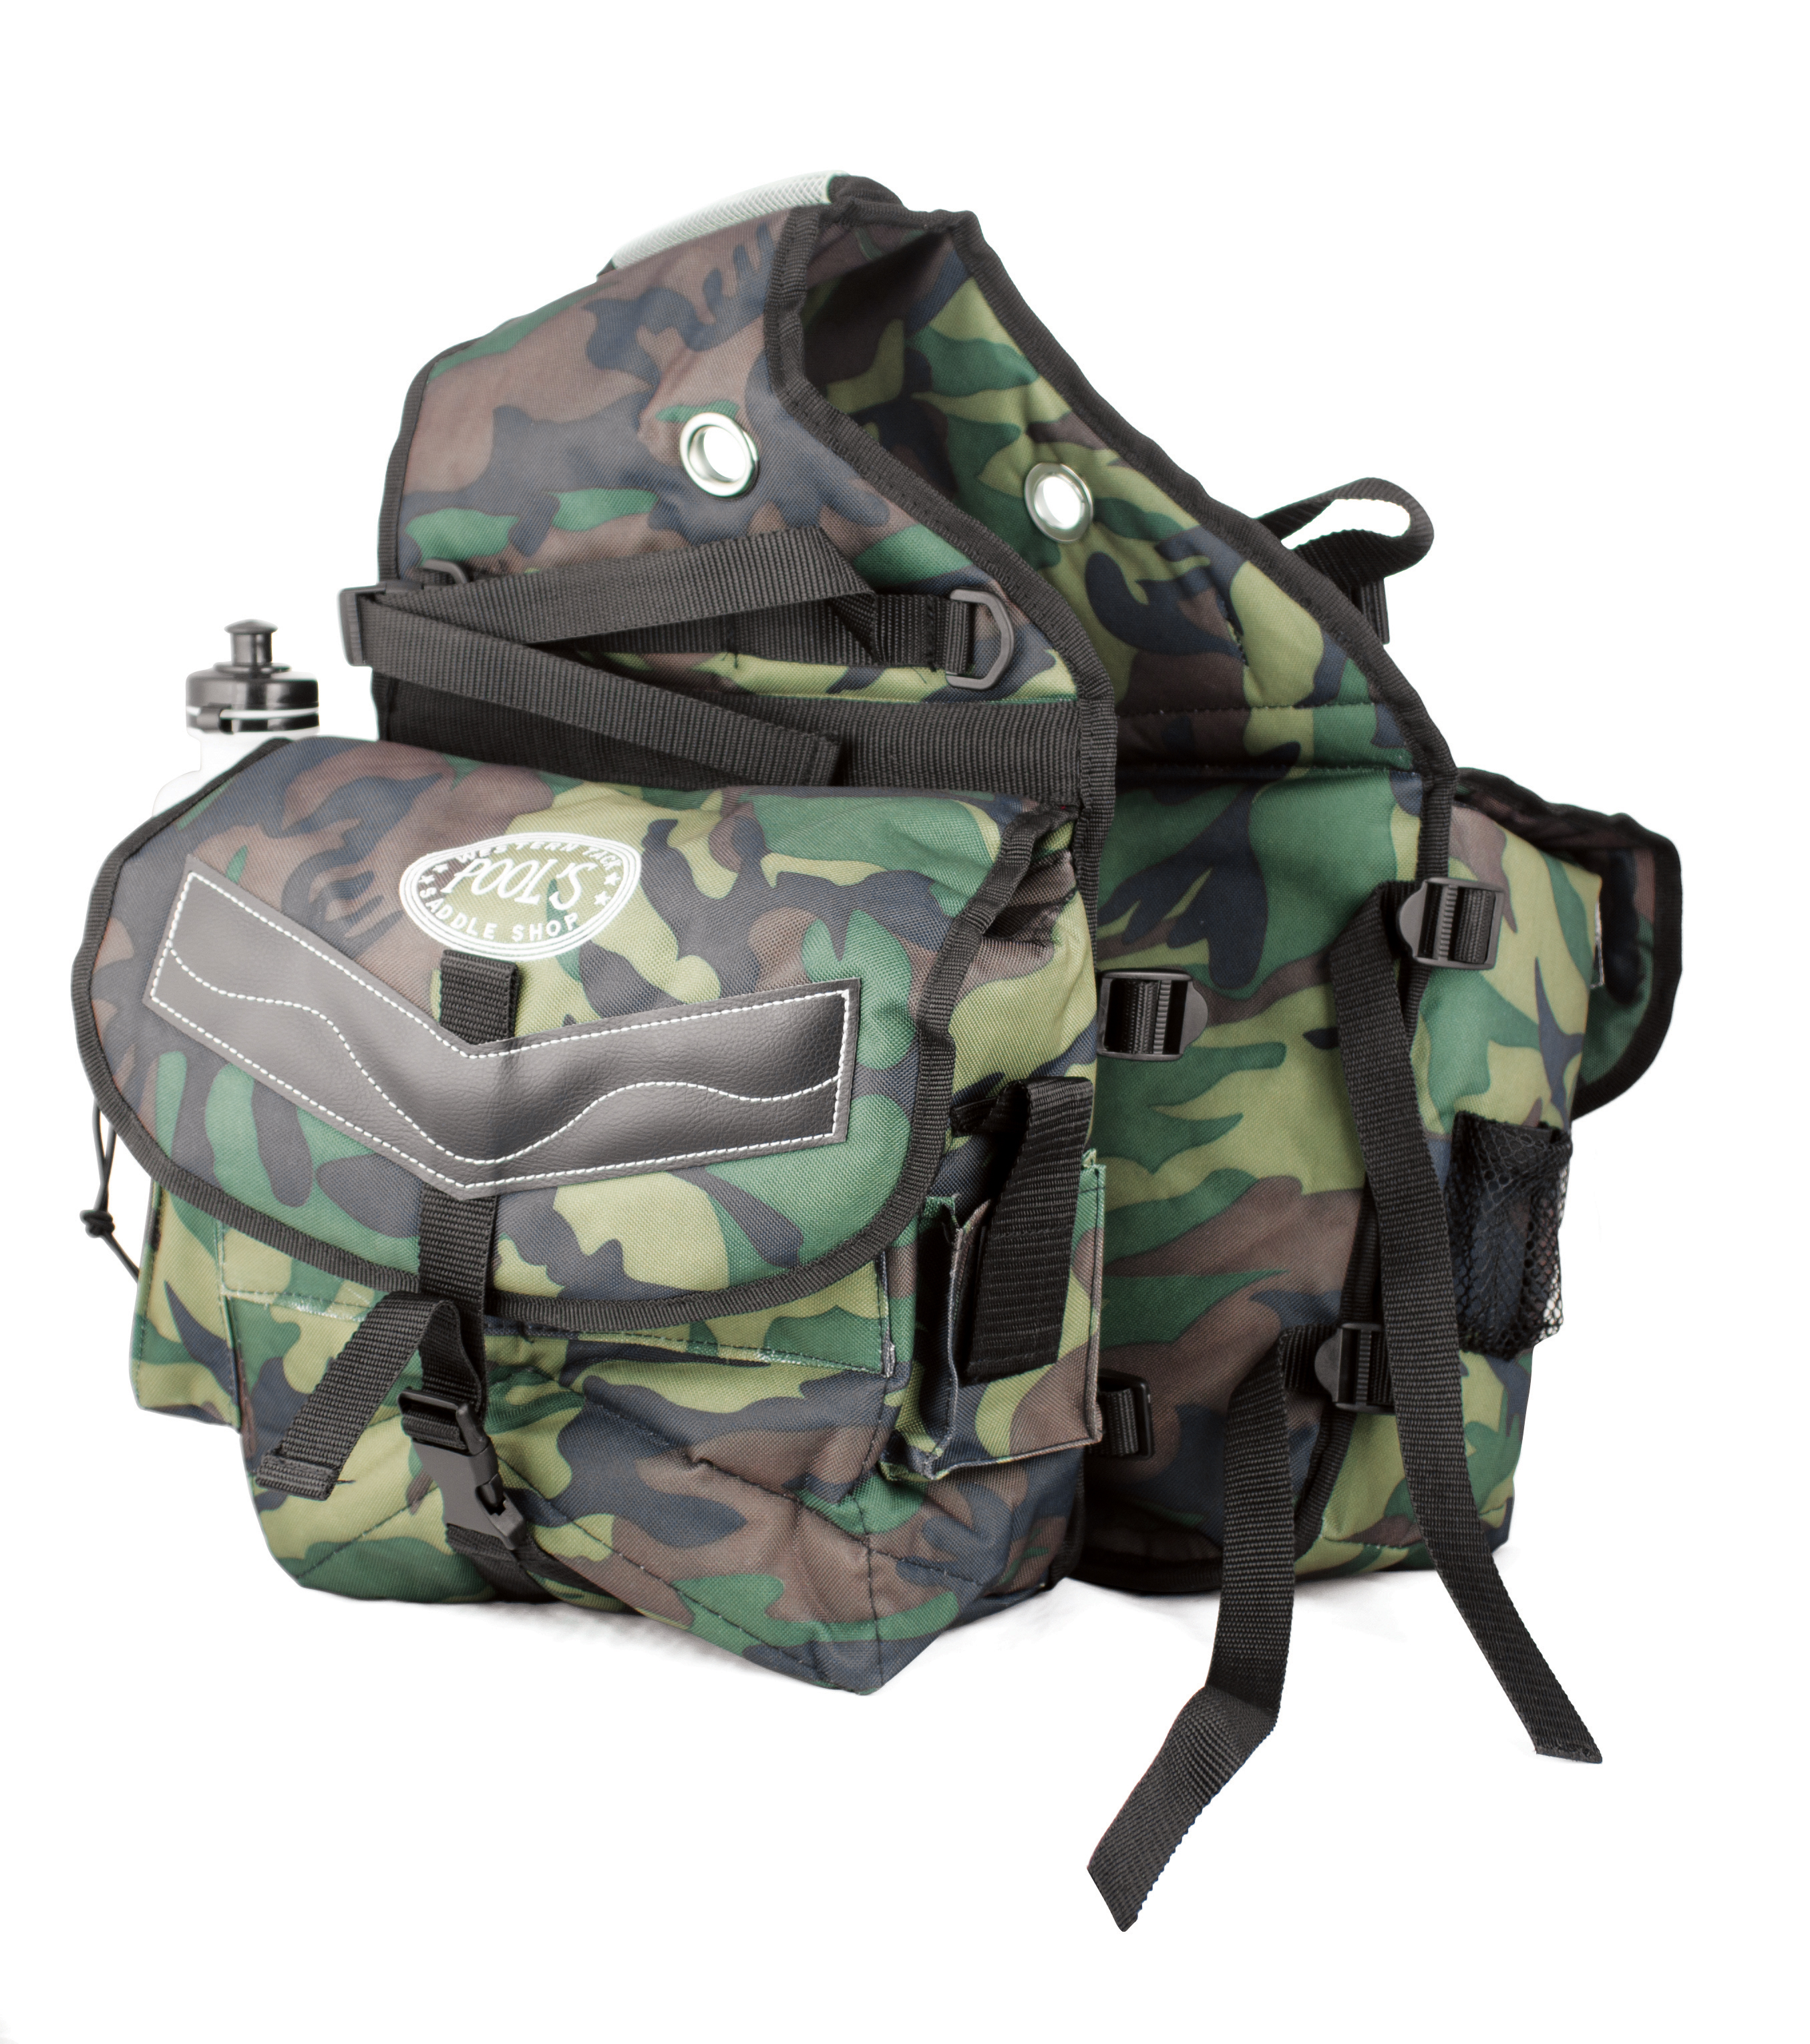 Saddlebag Camouflage Rear Pools